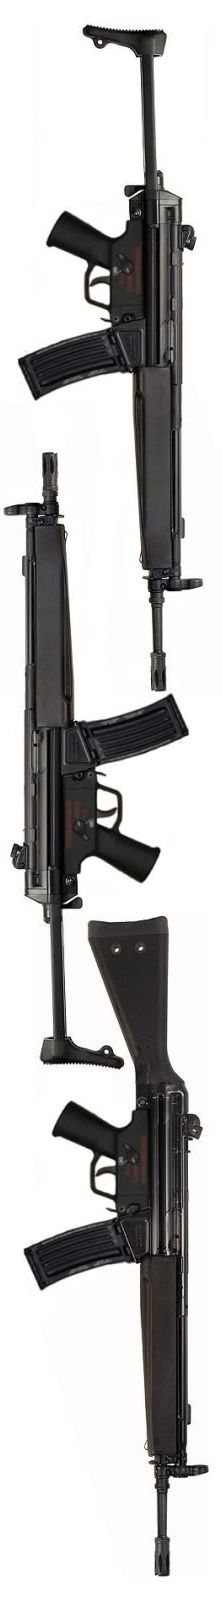 HK33 family (5.56x45mm): HK33 A3 telescoping stock, HK33K A3 (short bbl) and HK33 A2 fixed stock.